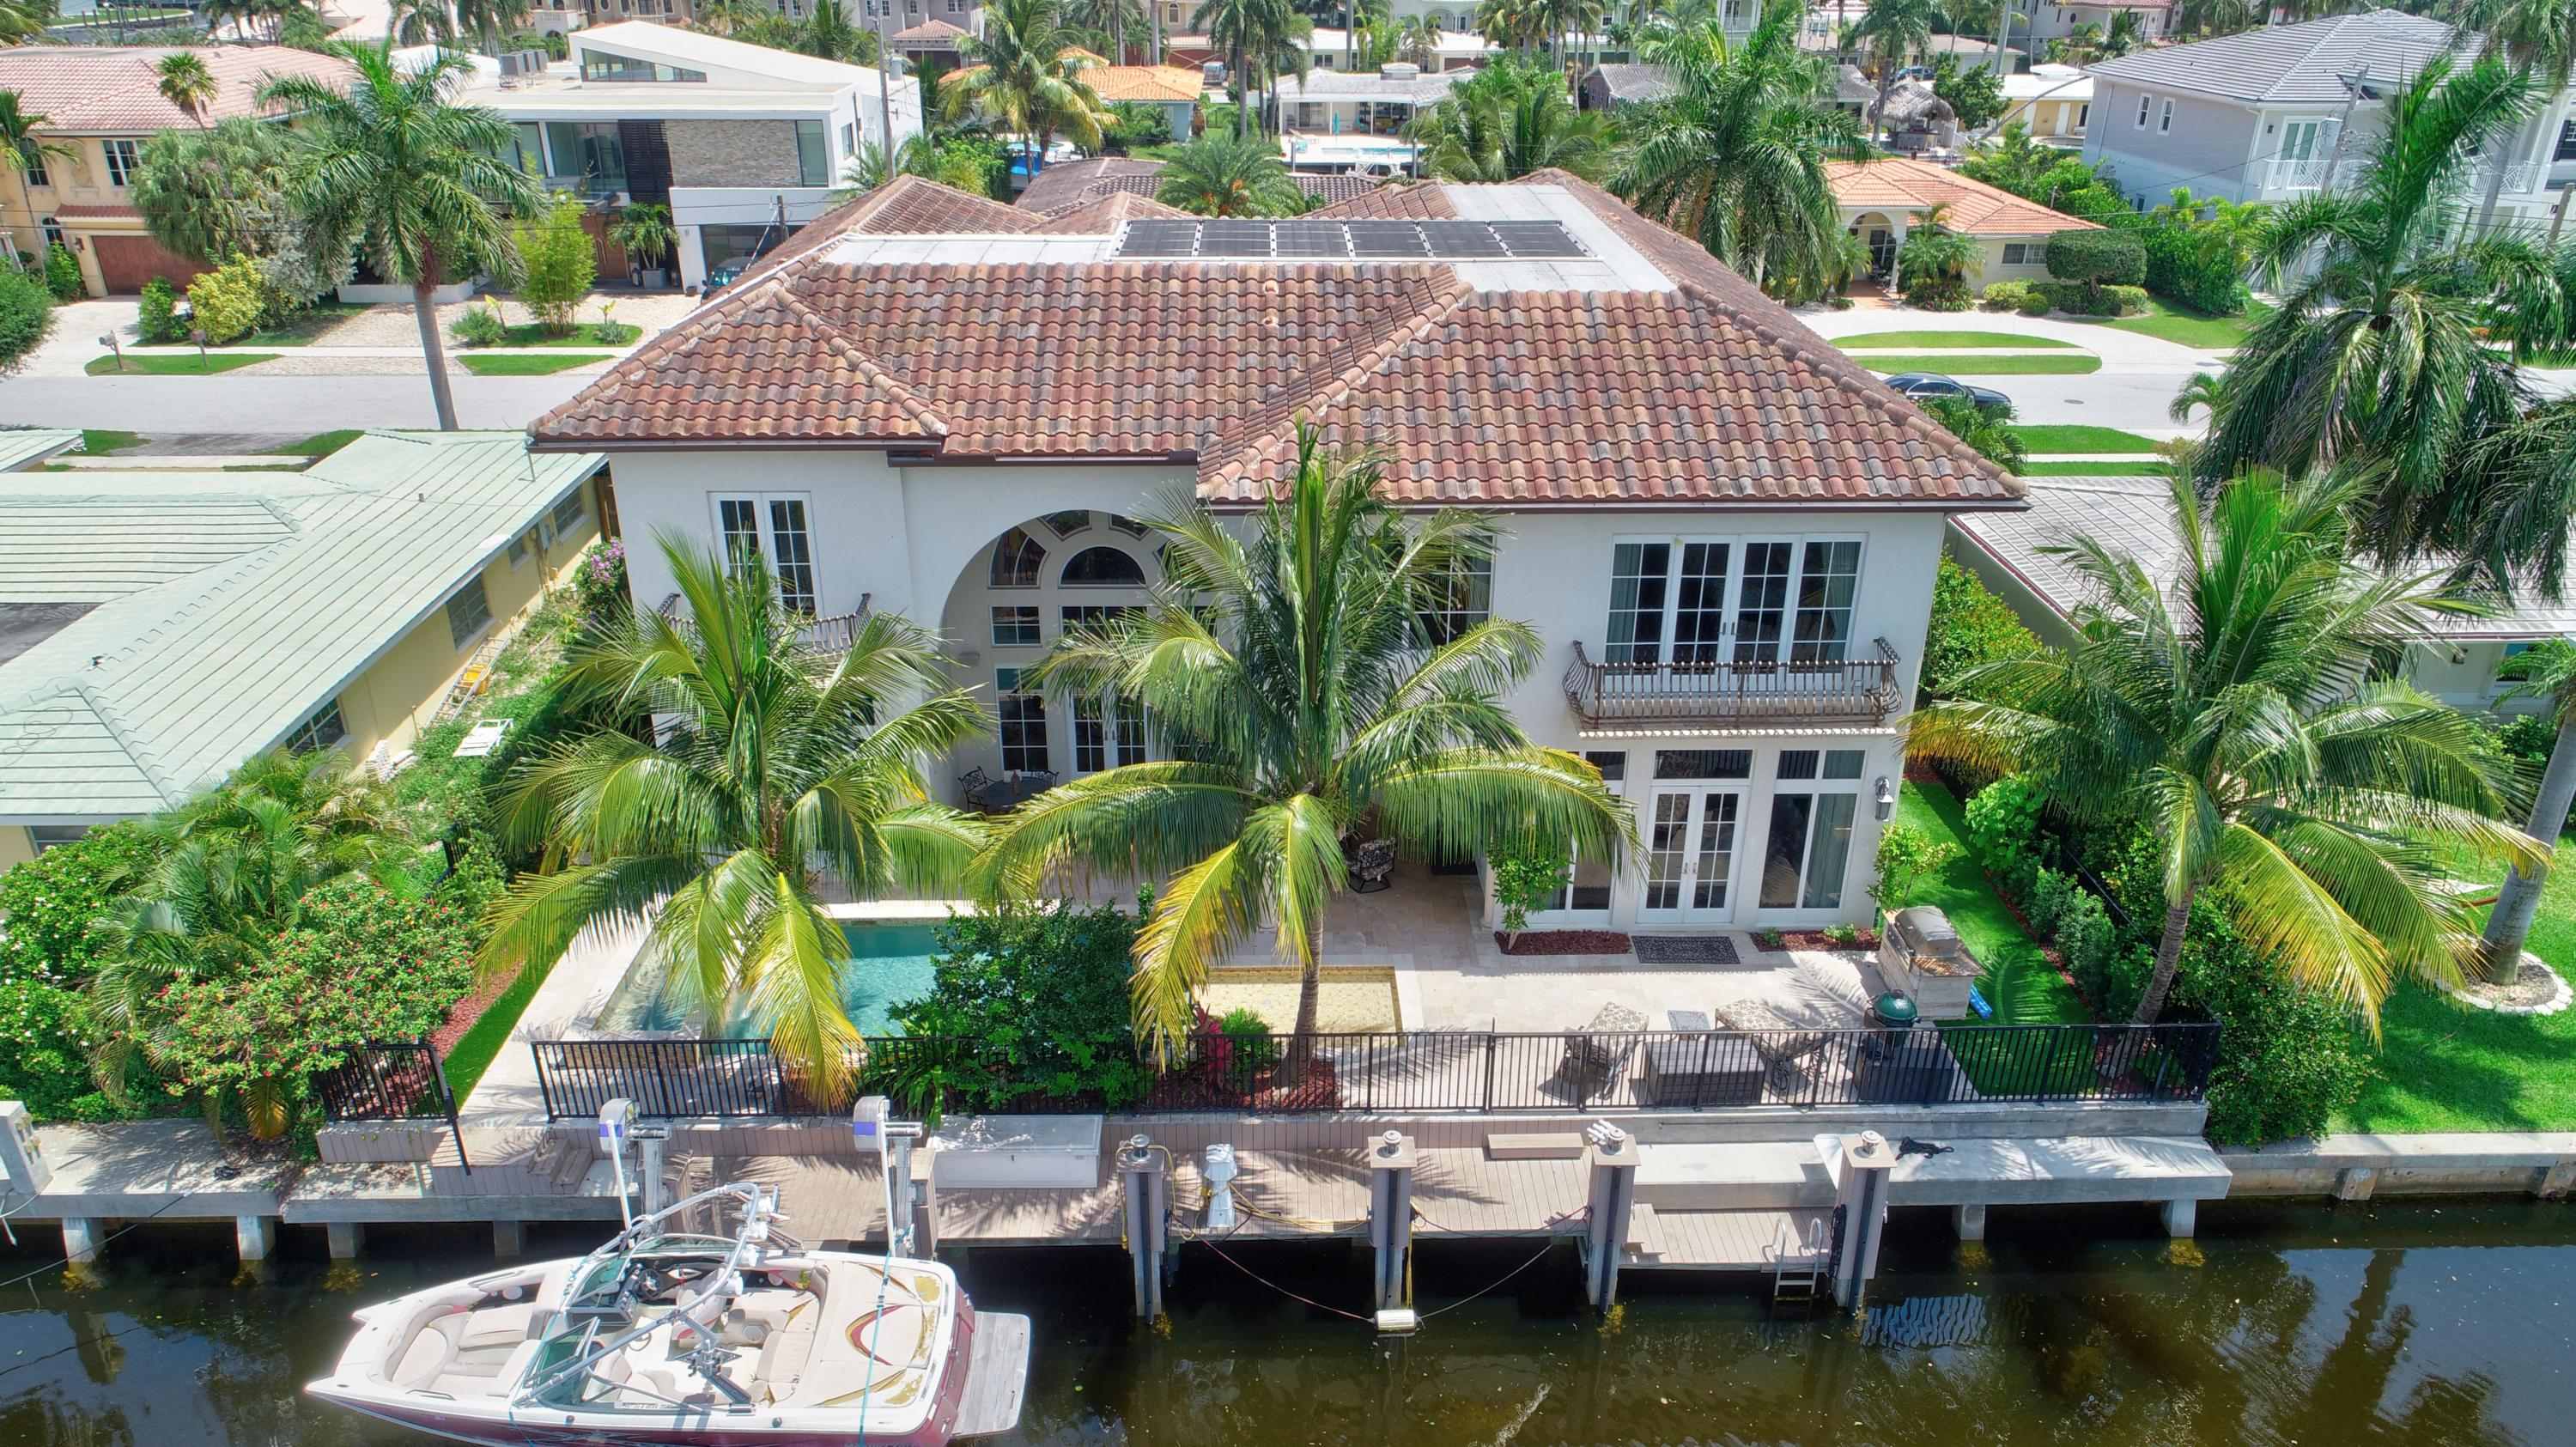 823 71st Street, Boca Raton, Florida 33487, 5 Bedrooms Bedrooms, ,5 BathroomsBathrooms,Residential,For Sale,71st,RX-10610437